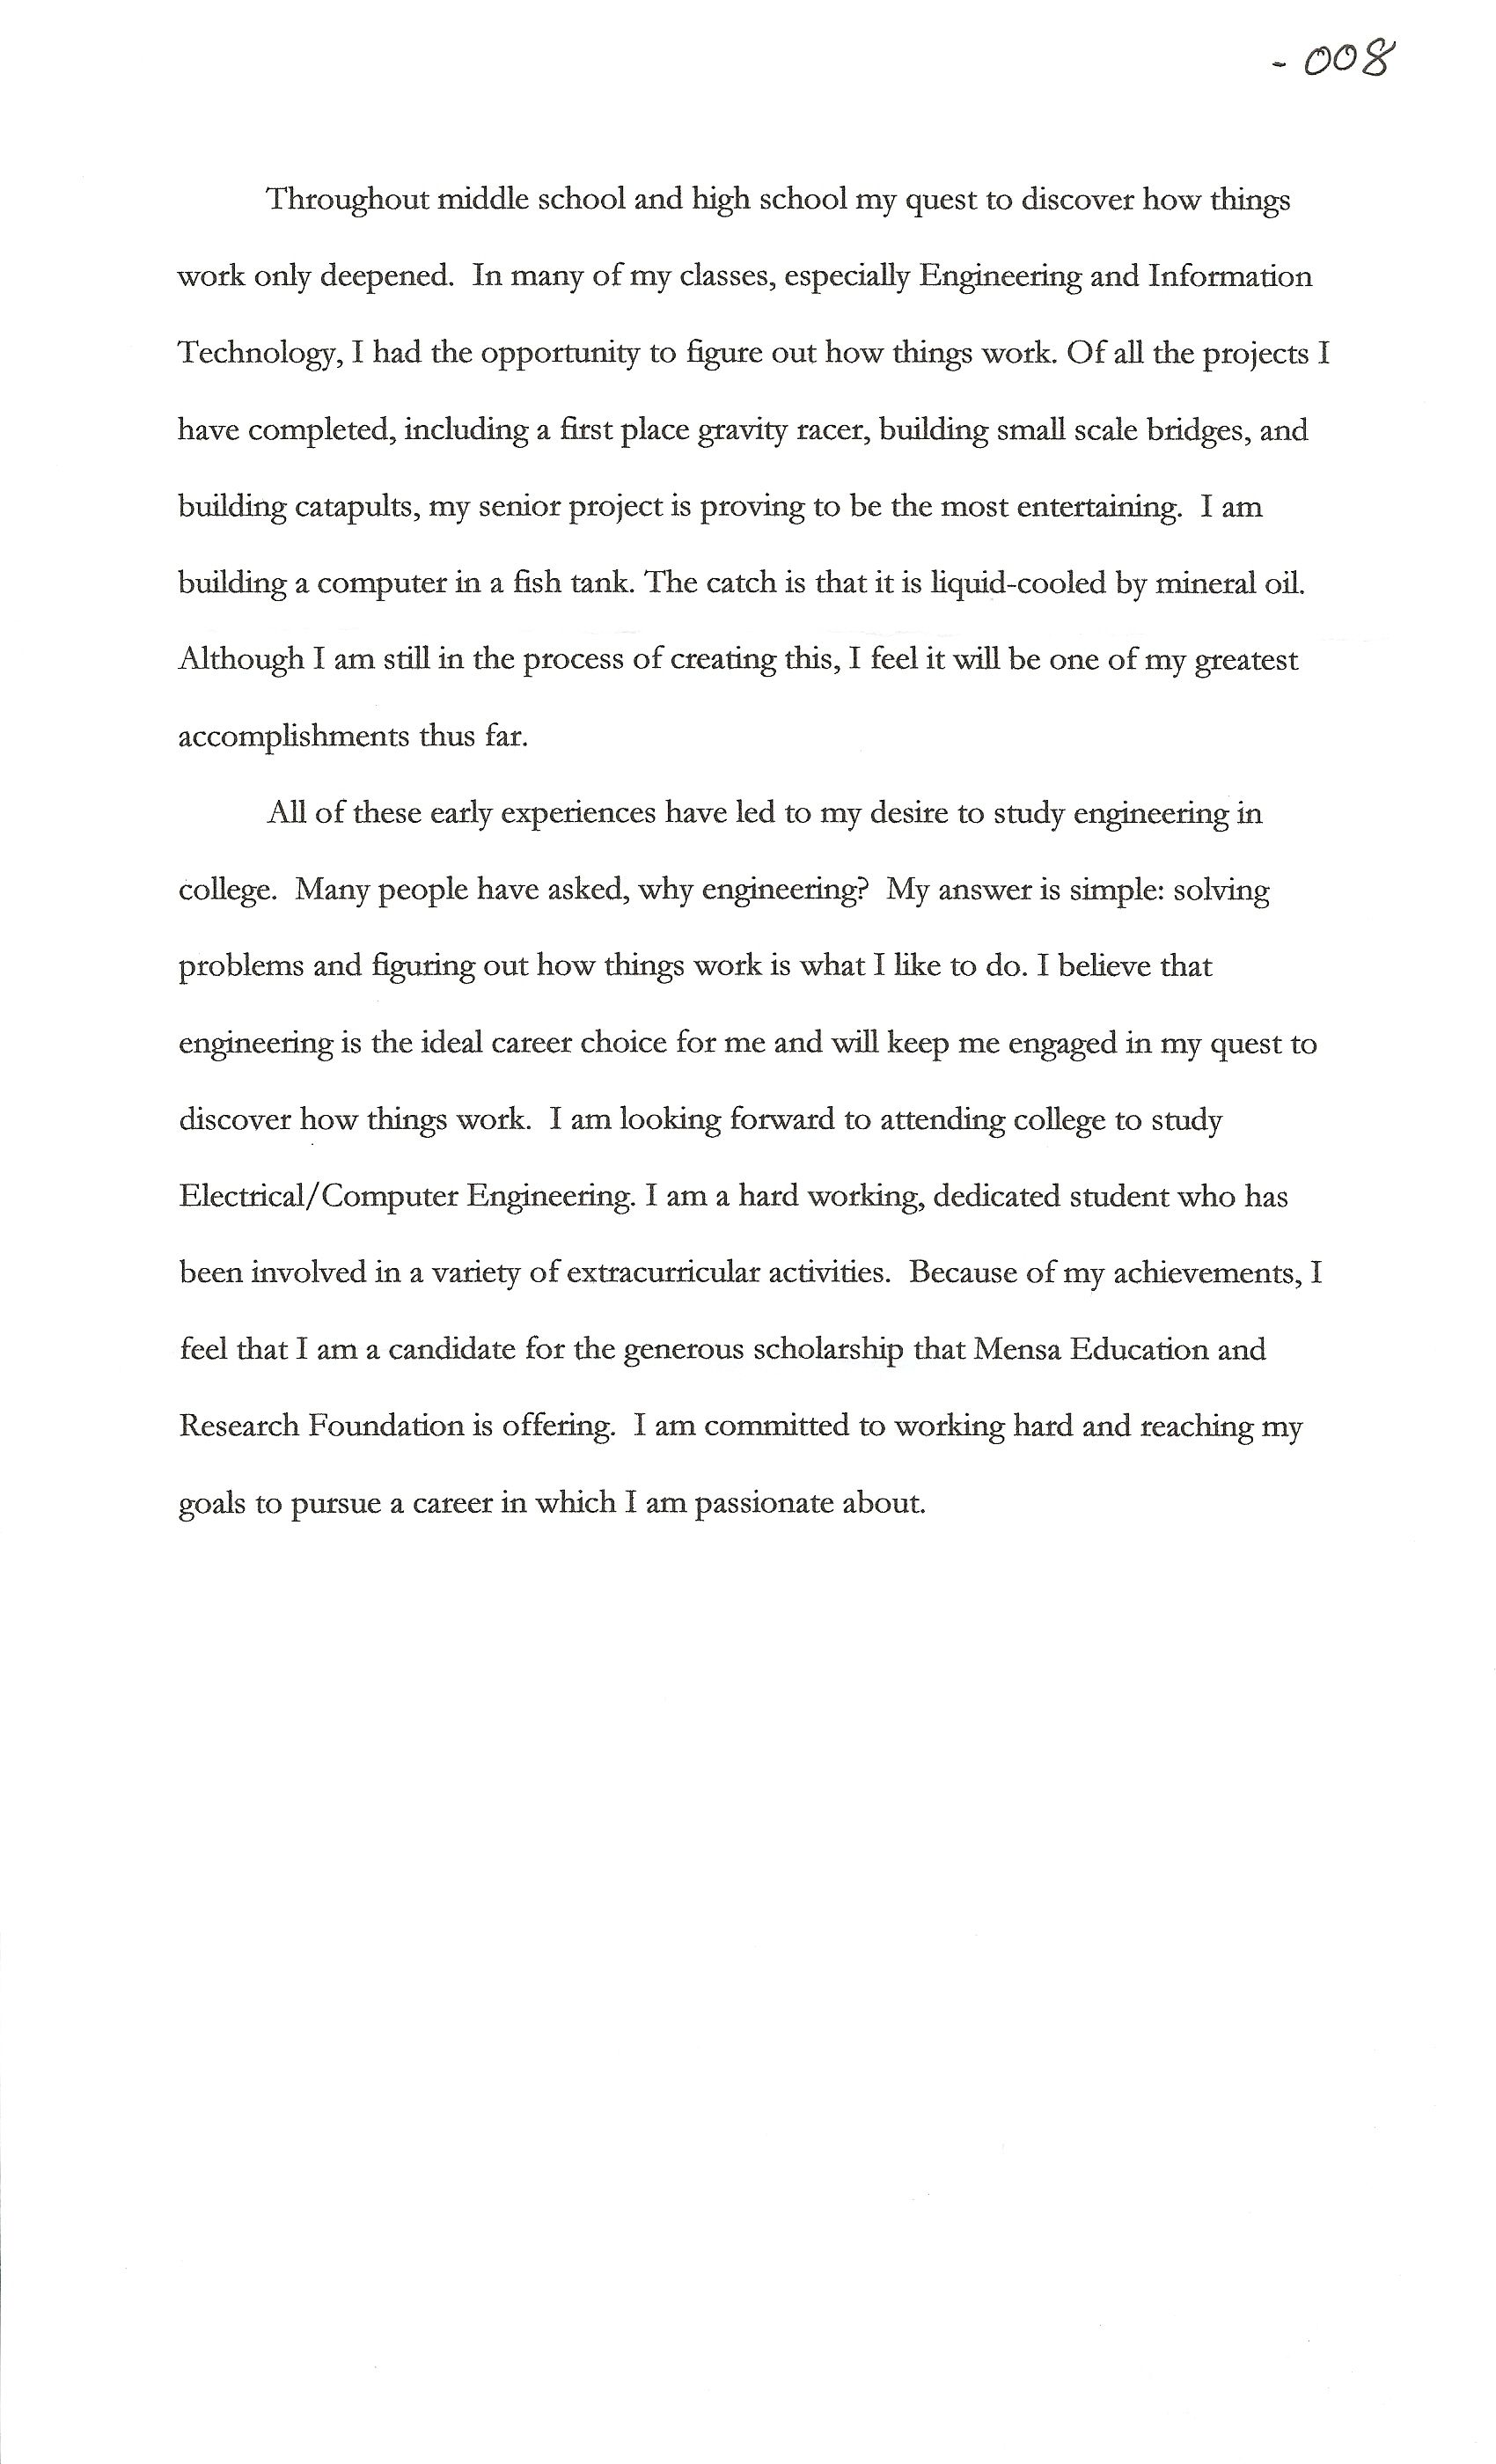 Sample college essays on goals character trait analysis essay example